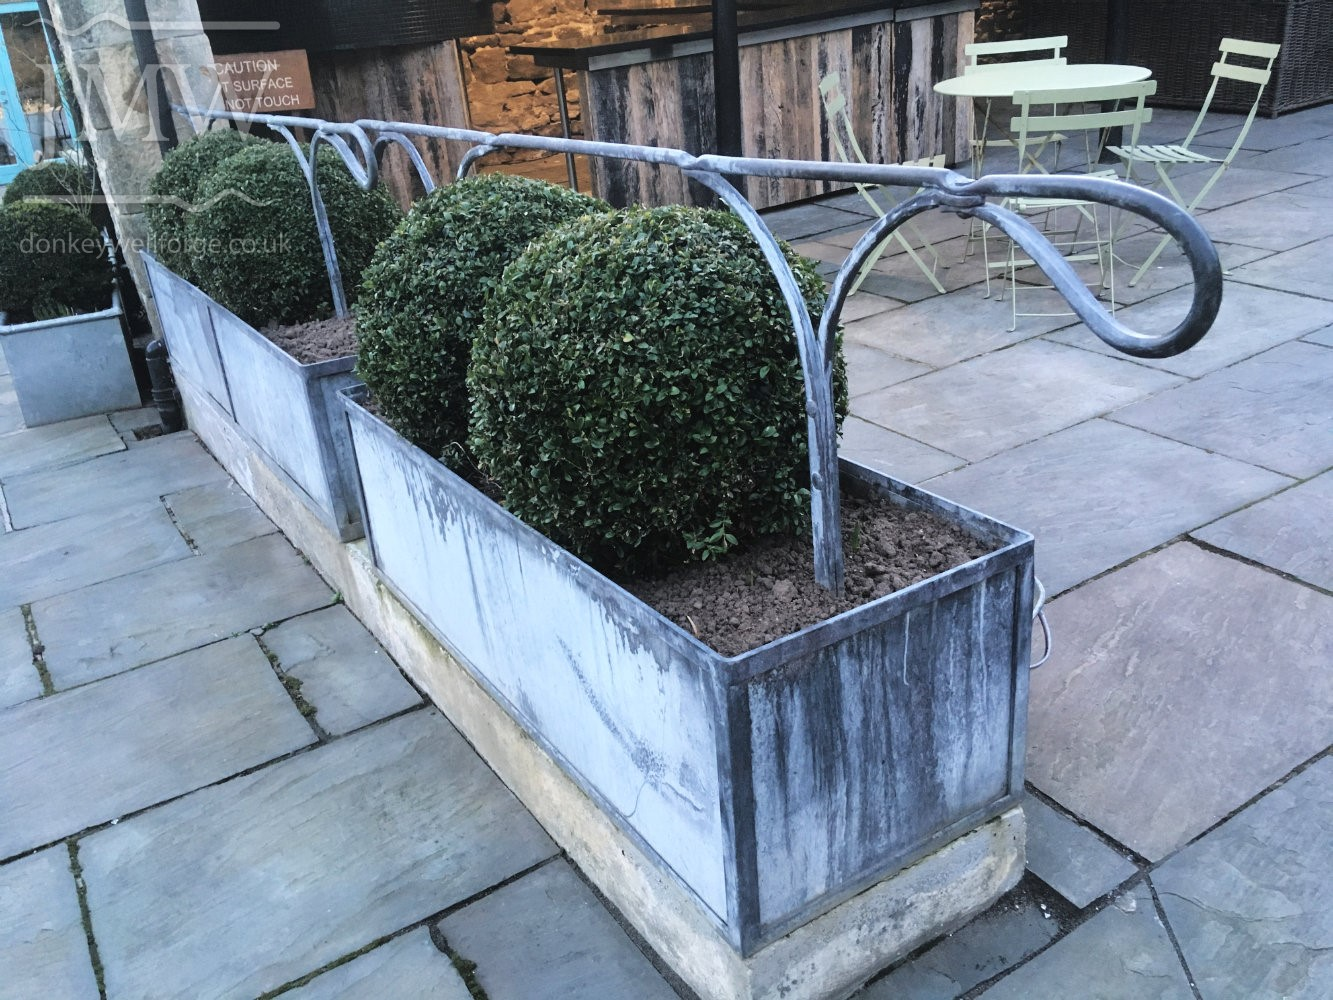 healey-barn-wedding-venue-handrail-lead-finish-donkeywell-forge-forged